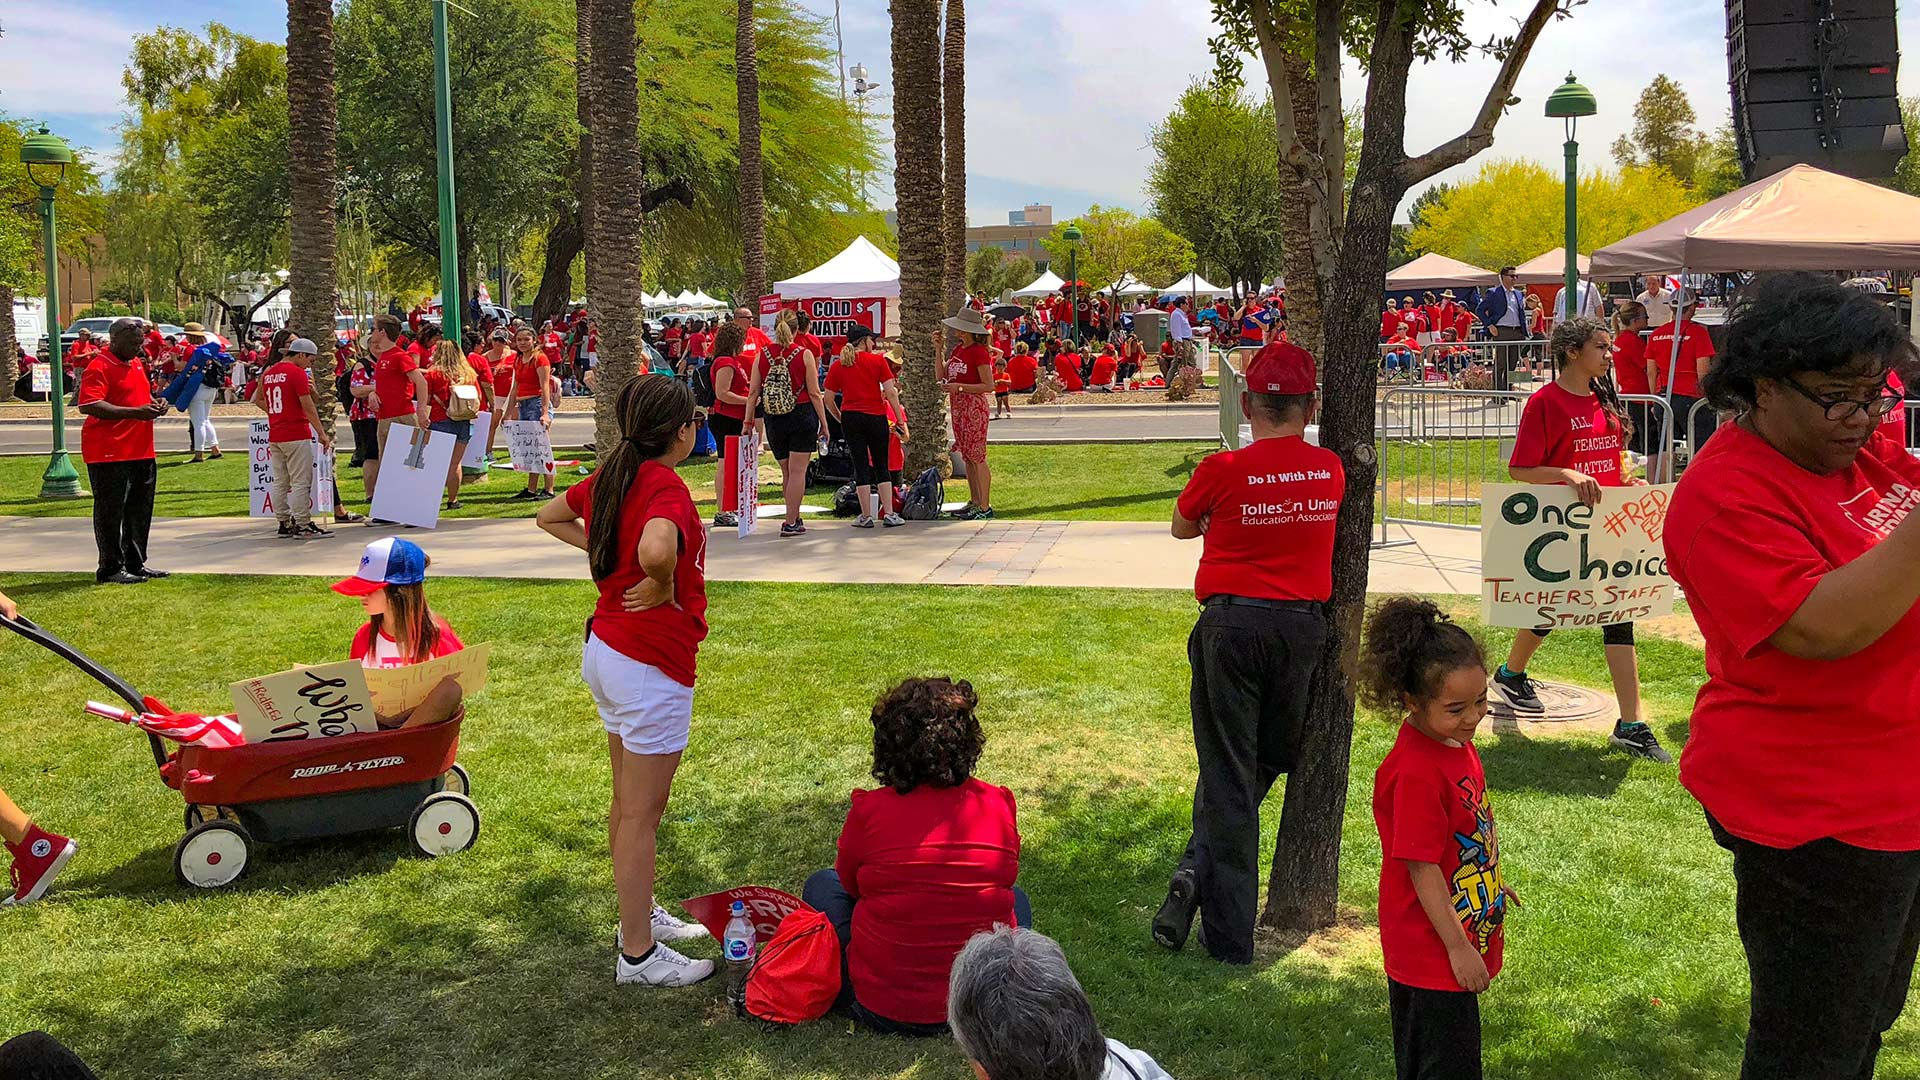 #RedForEd demonstrators gather in a park during a walkout, April 26, 2018. Temperatures that day reached into the upper 90s.